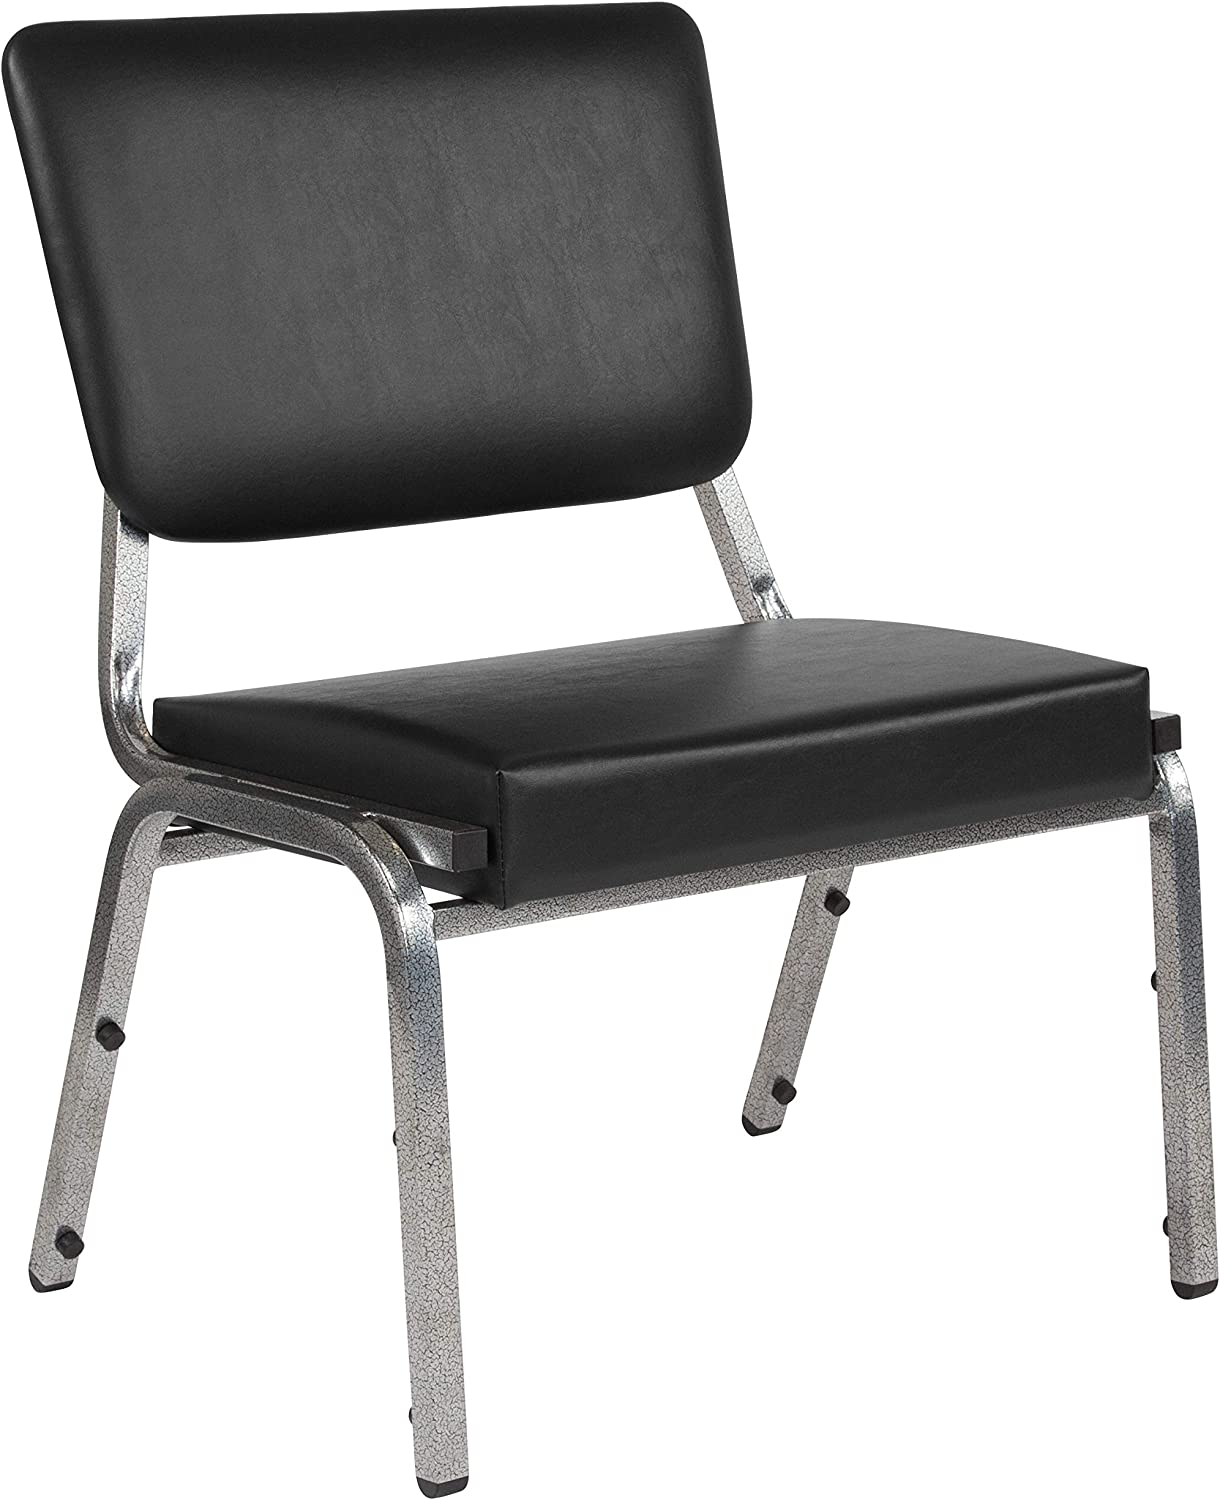 Flash Furniture HERCULES Series 1500 lb. Rated Black Antimicrobial Vinyl Bariatric Medical Reception Chair with 3 4 Panel Back